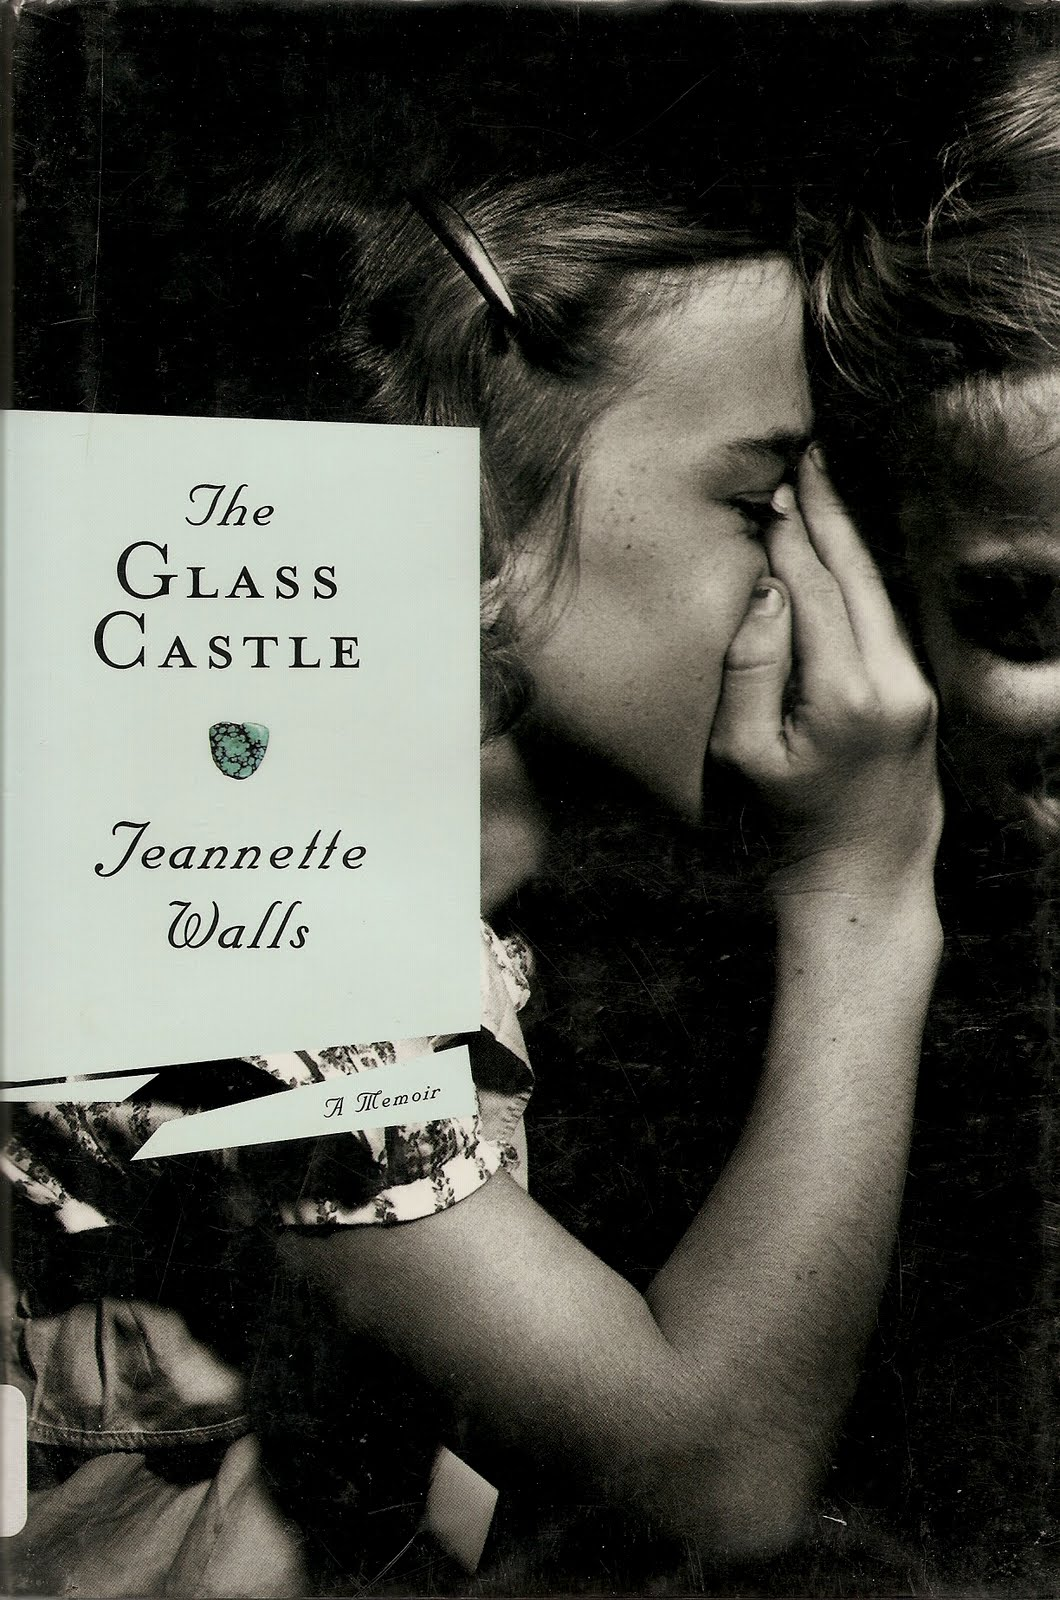 Review of the glass castle